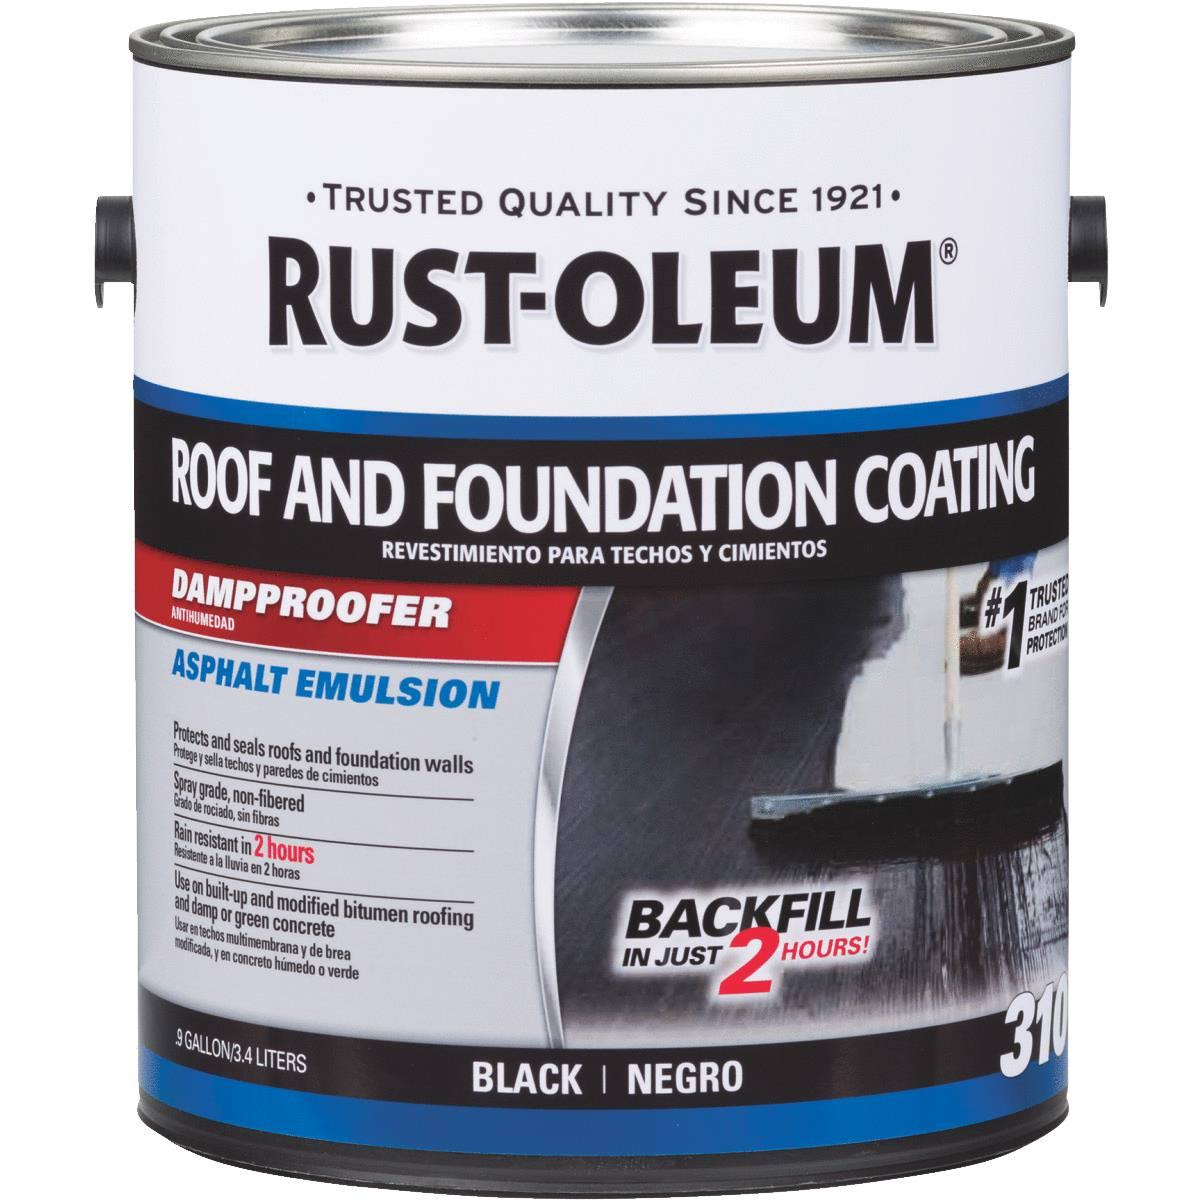 Rust-Oleum 302225 310 Roof and Foundation Coating Black Gal